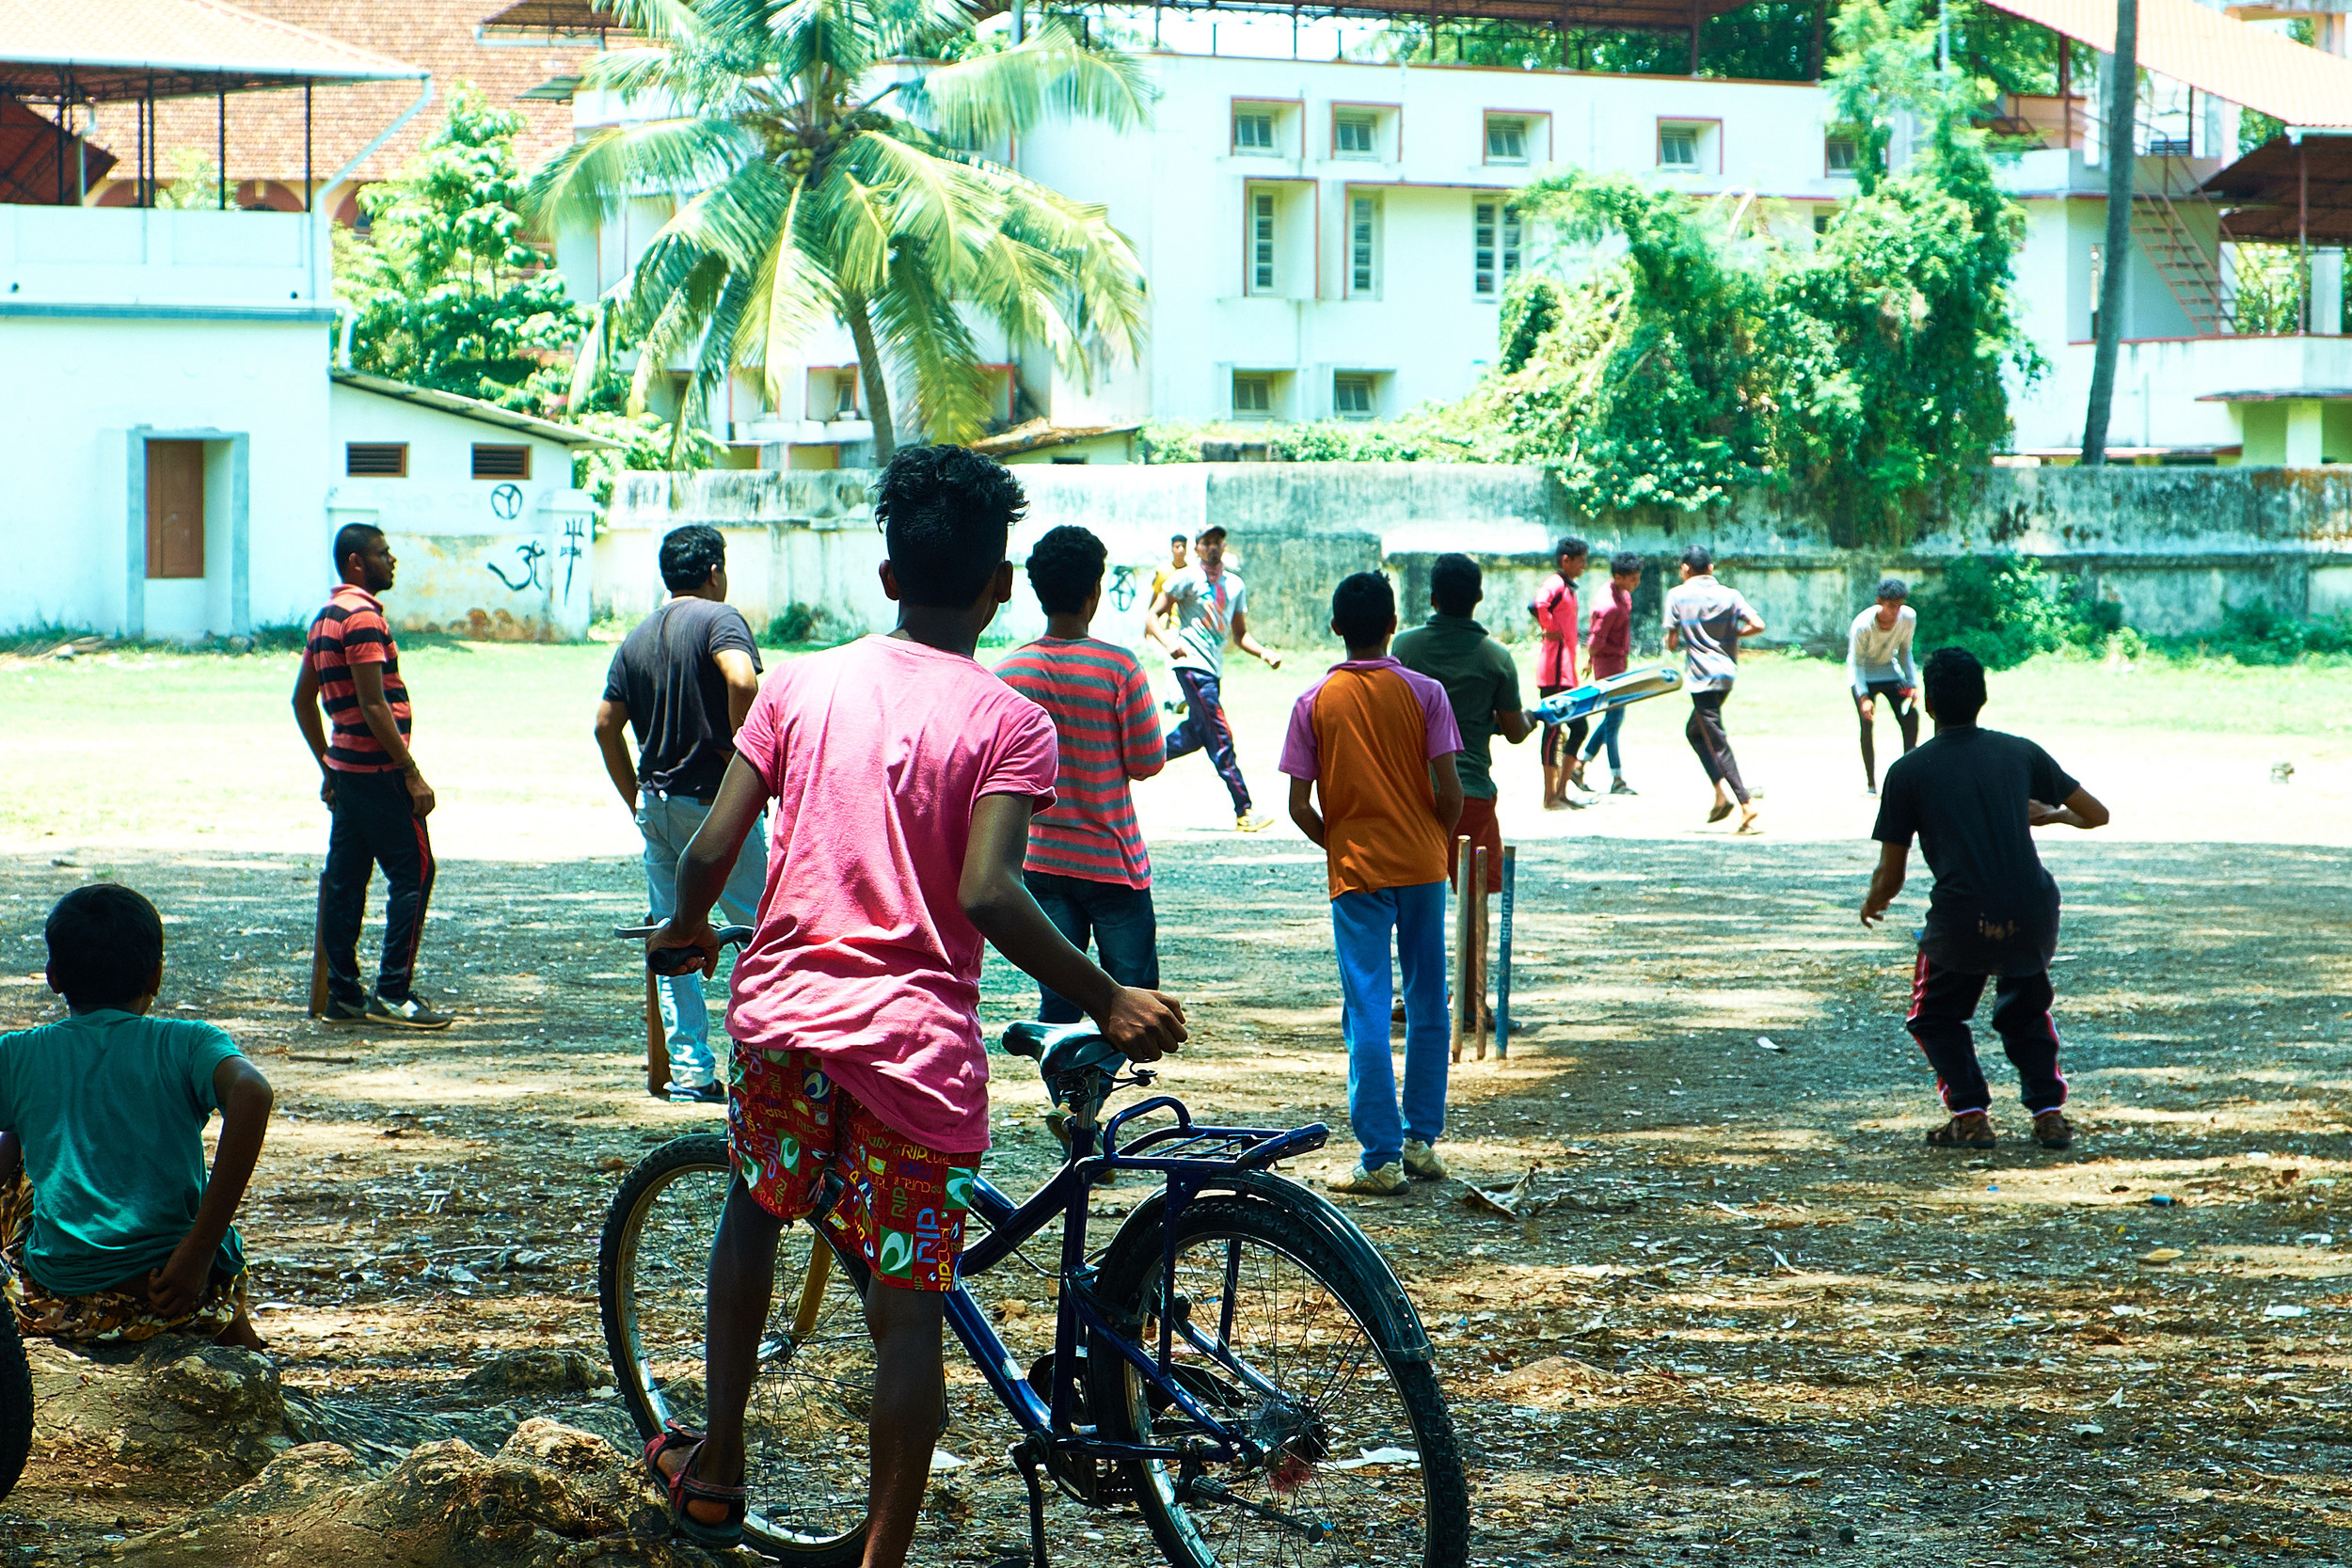 Cricket Game, Fort Kochi.